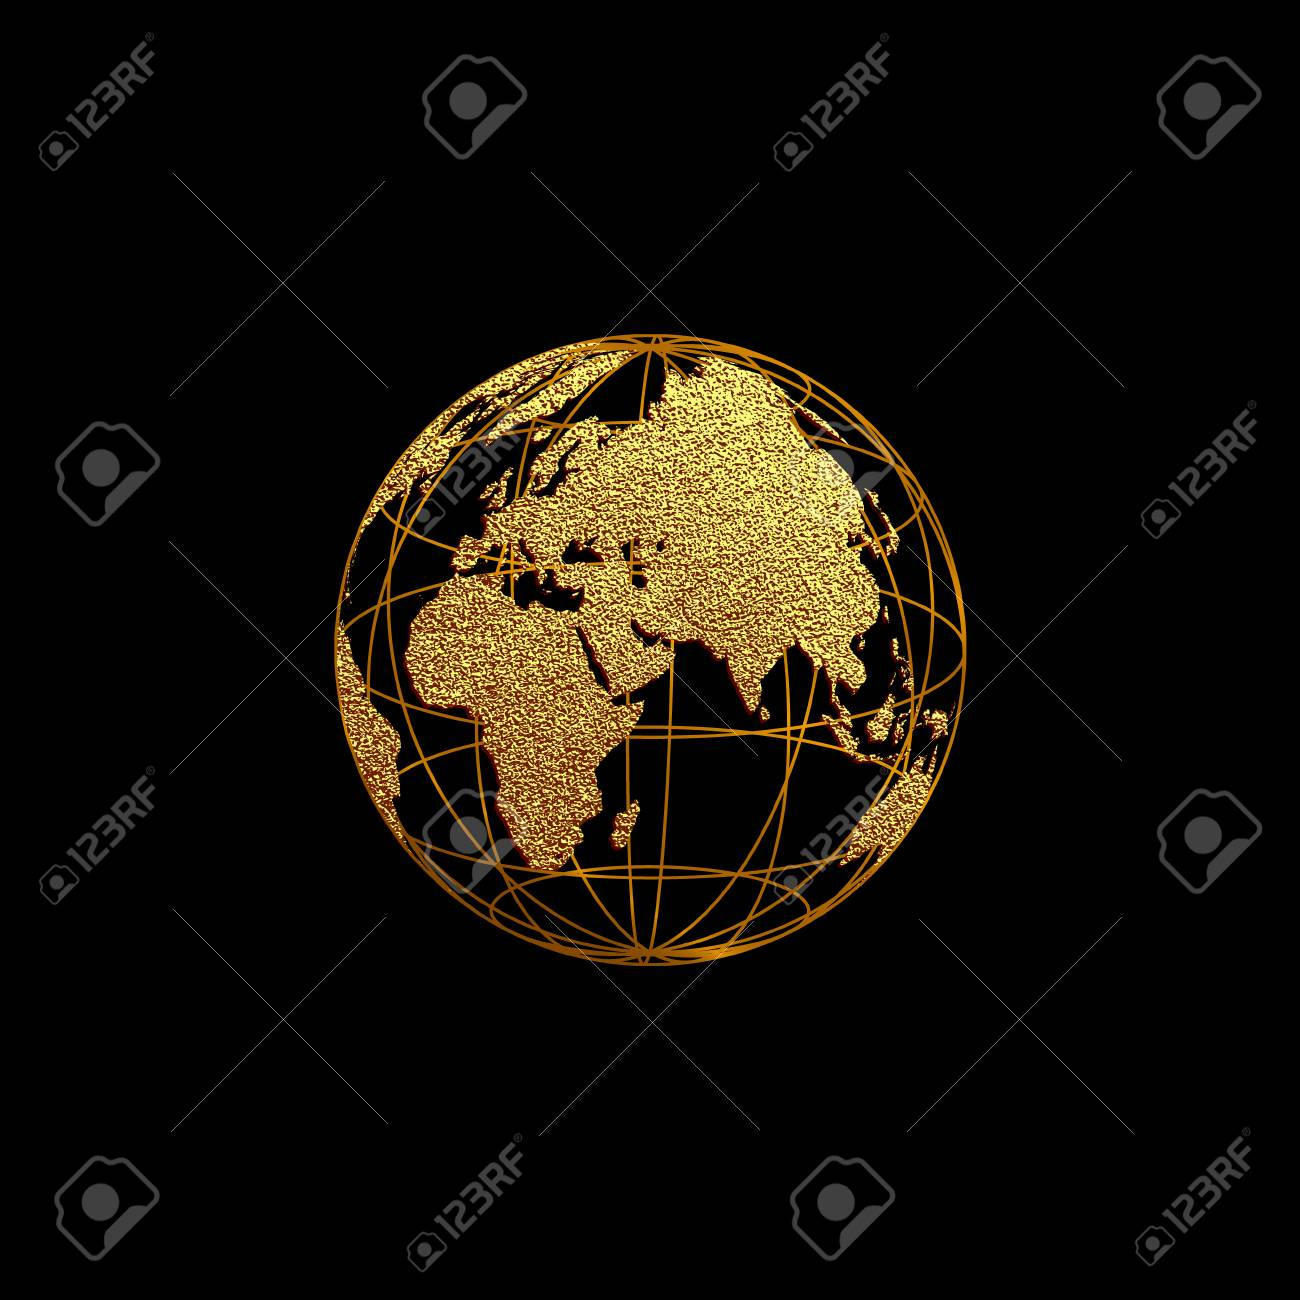 creative gold map of the world vector illustration golden template